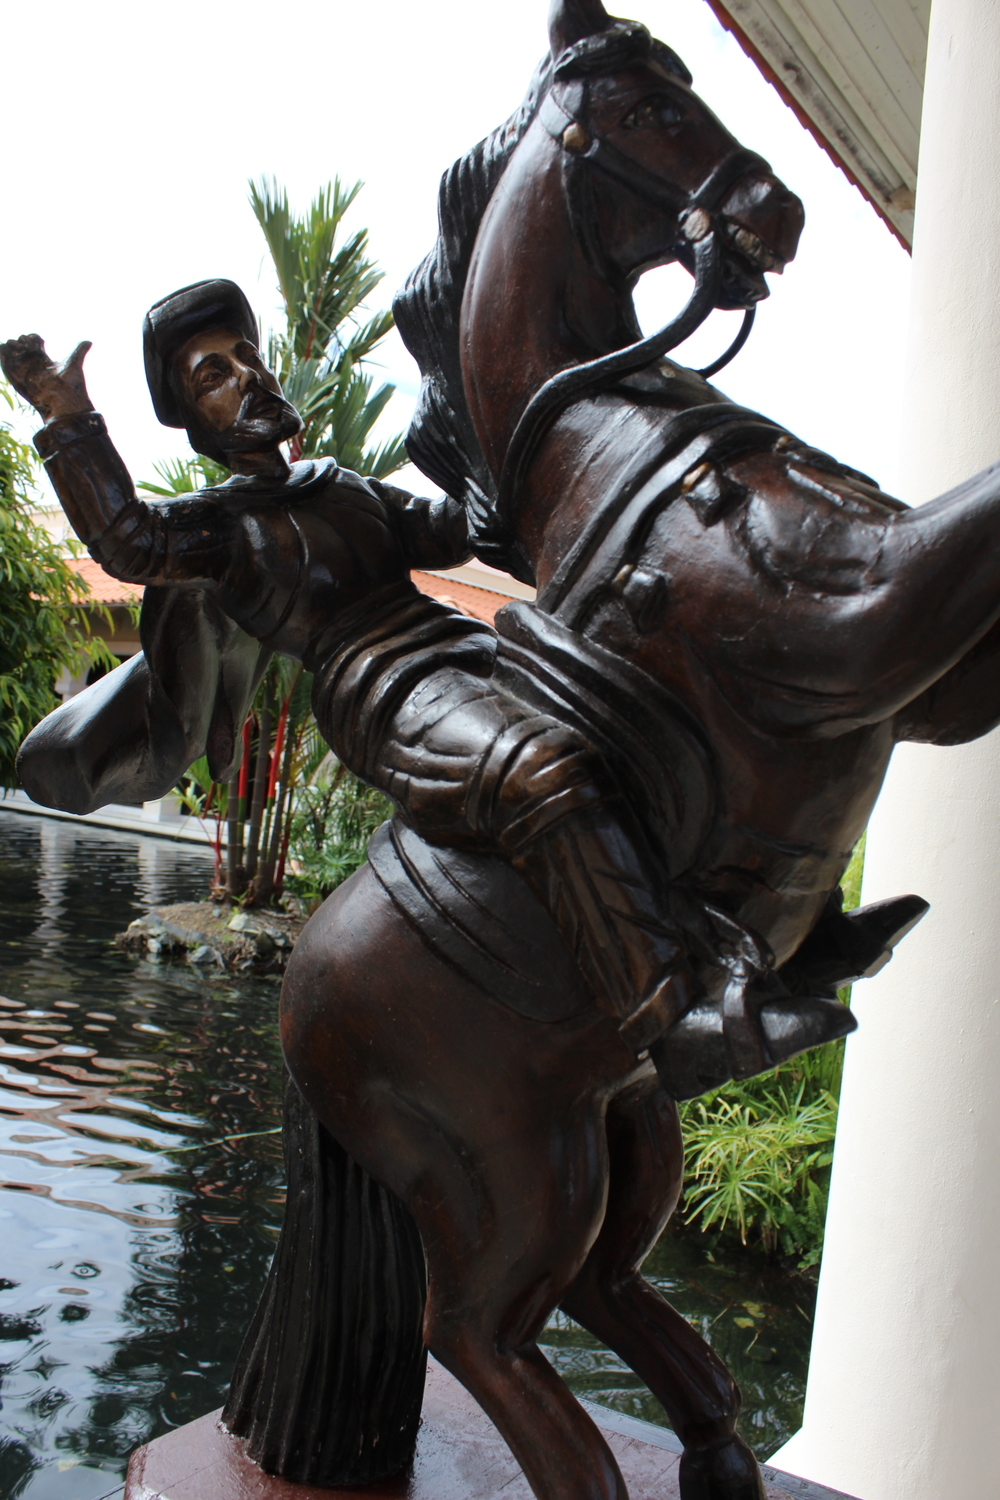 One of the many statues around the resort